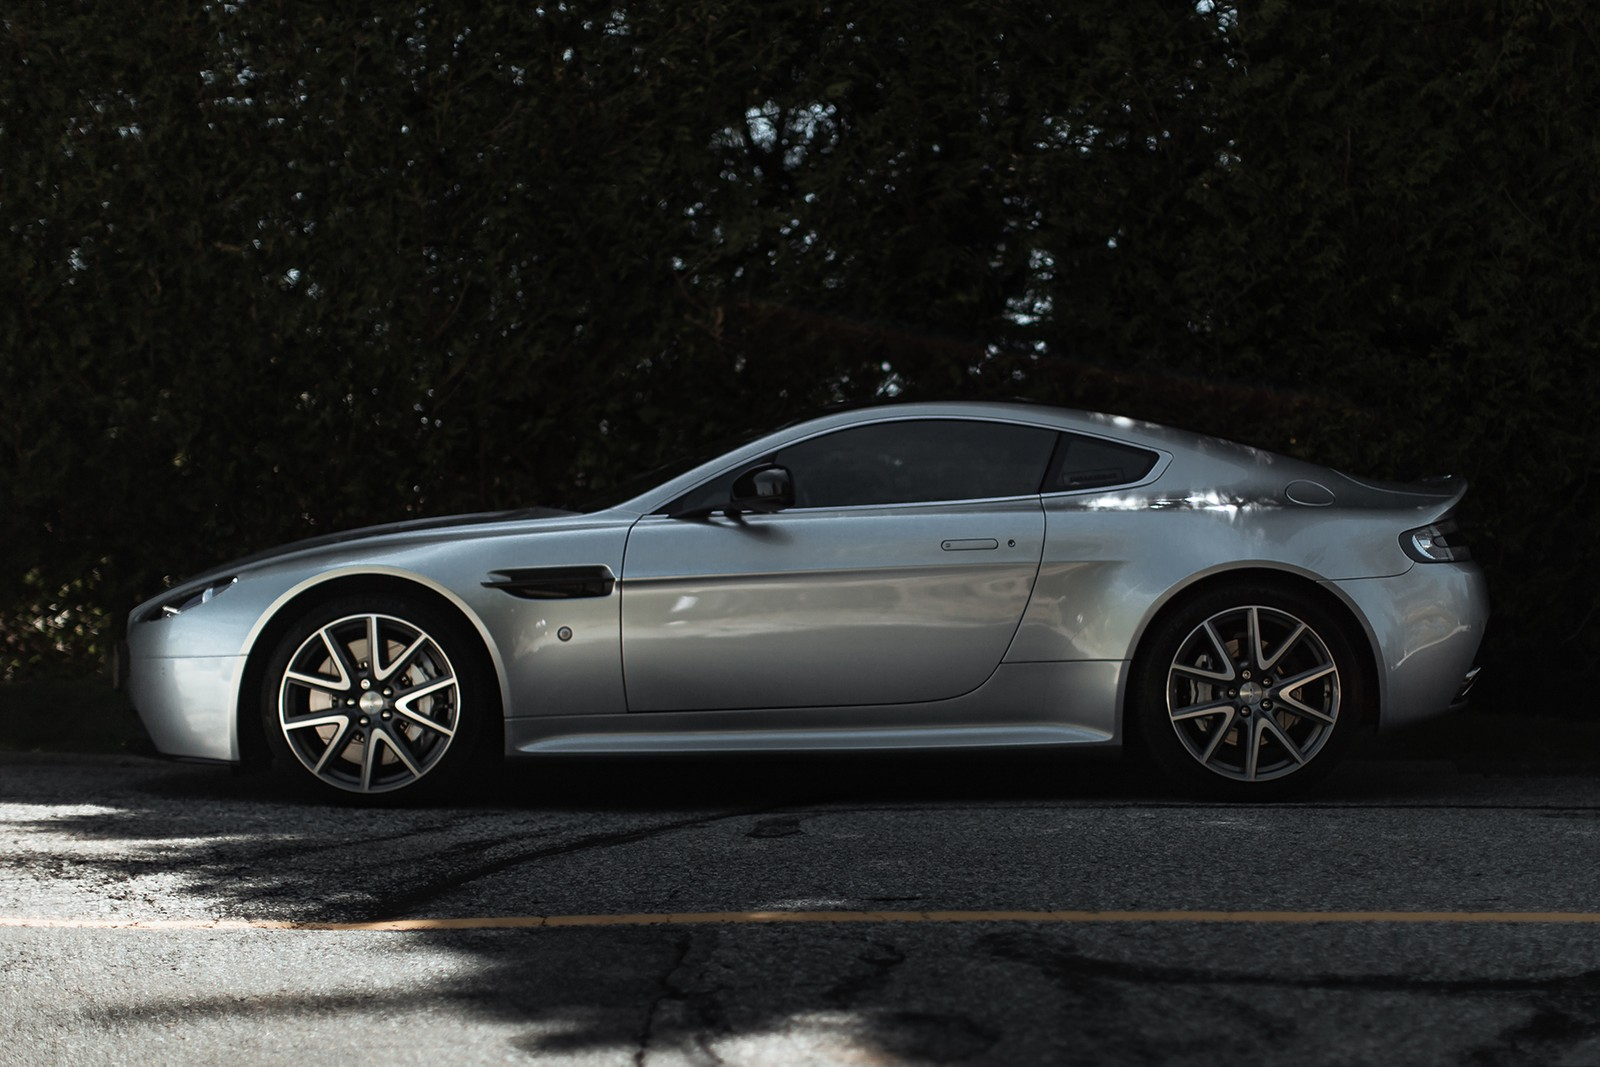 Nick Cheung of SNEAKERBOX's Aston Martin V8 Vantage S Digital Lead Daily Driver DRIVERS HYPEBEAST Car Club